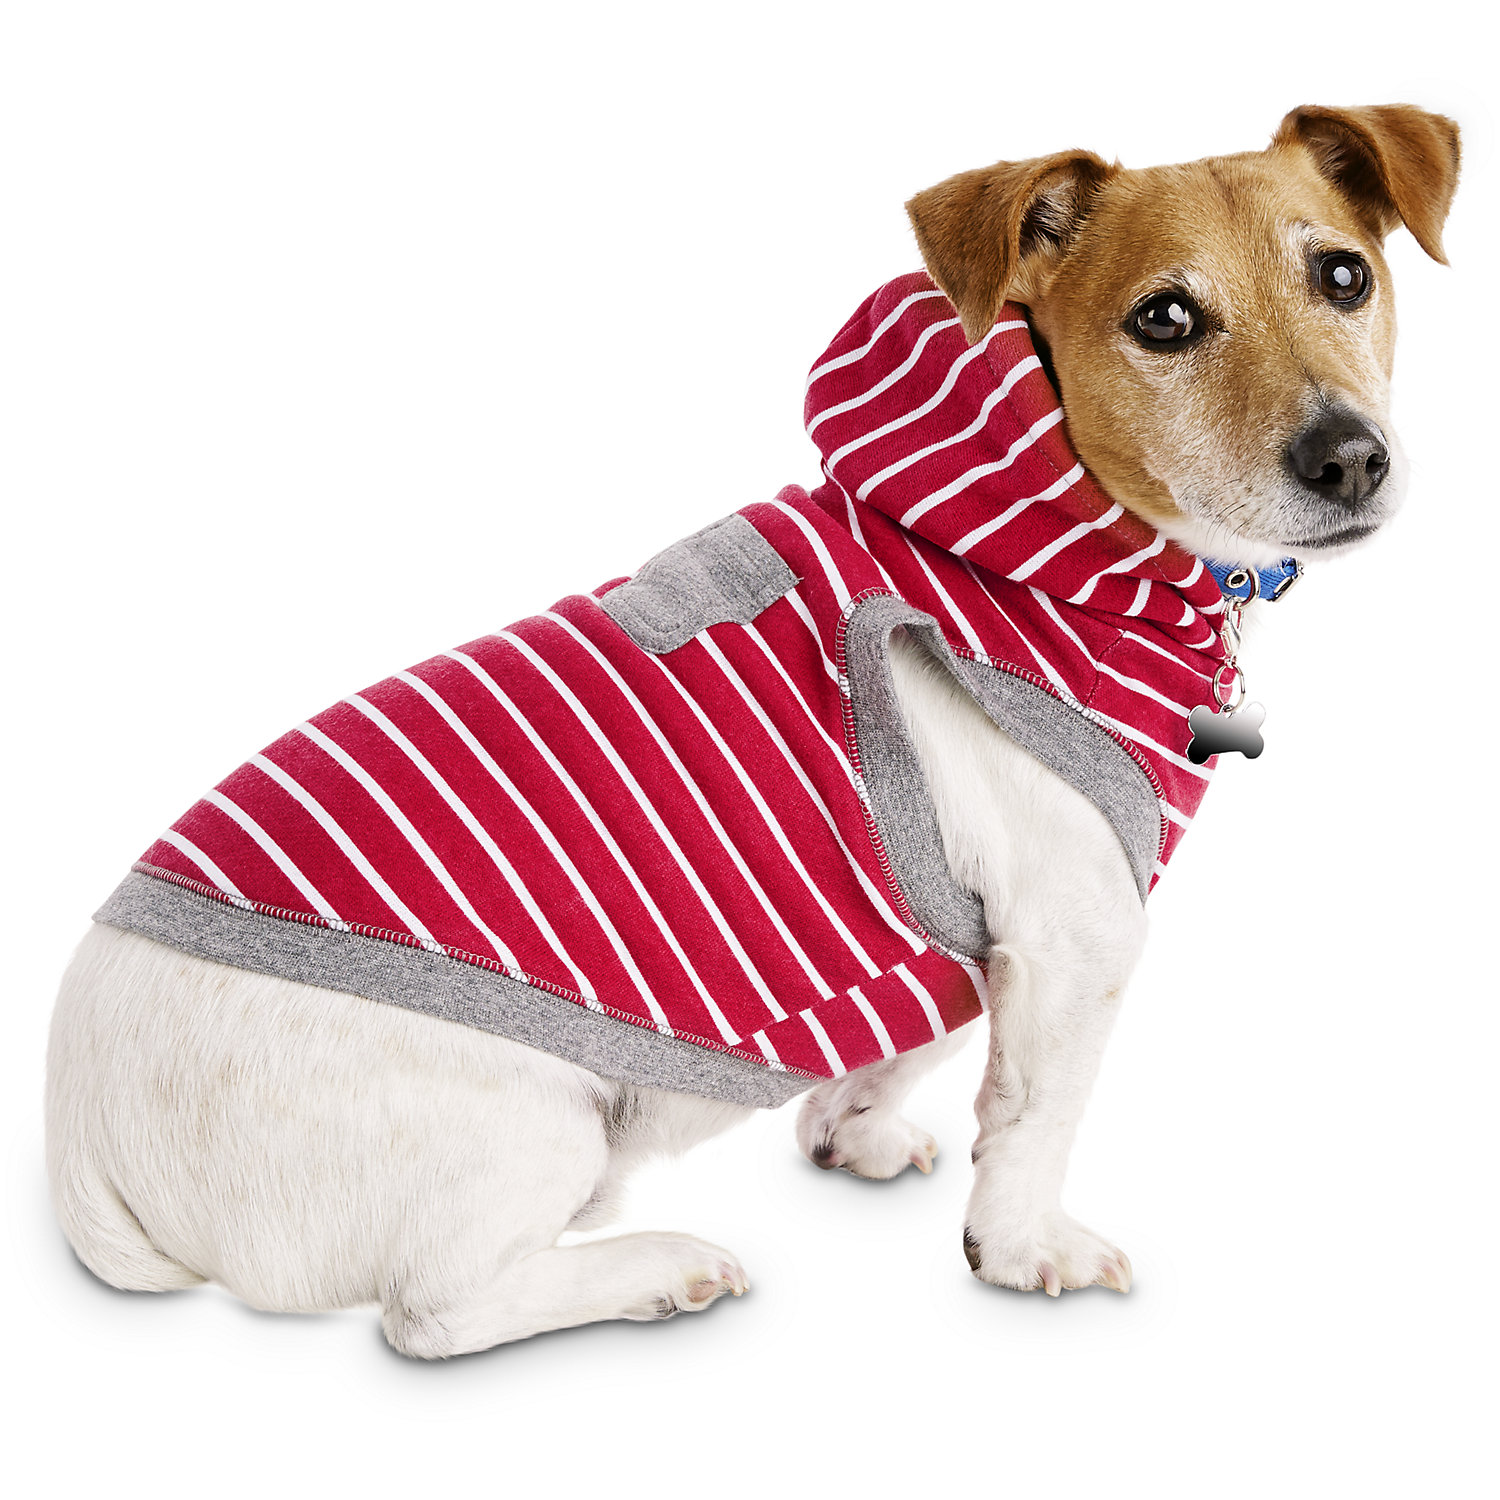 Bond & Co. Red Striped Dog Hoodie, Small